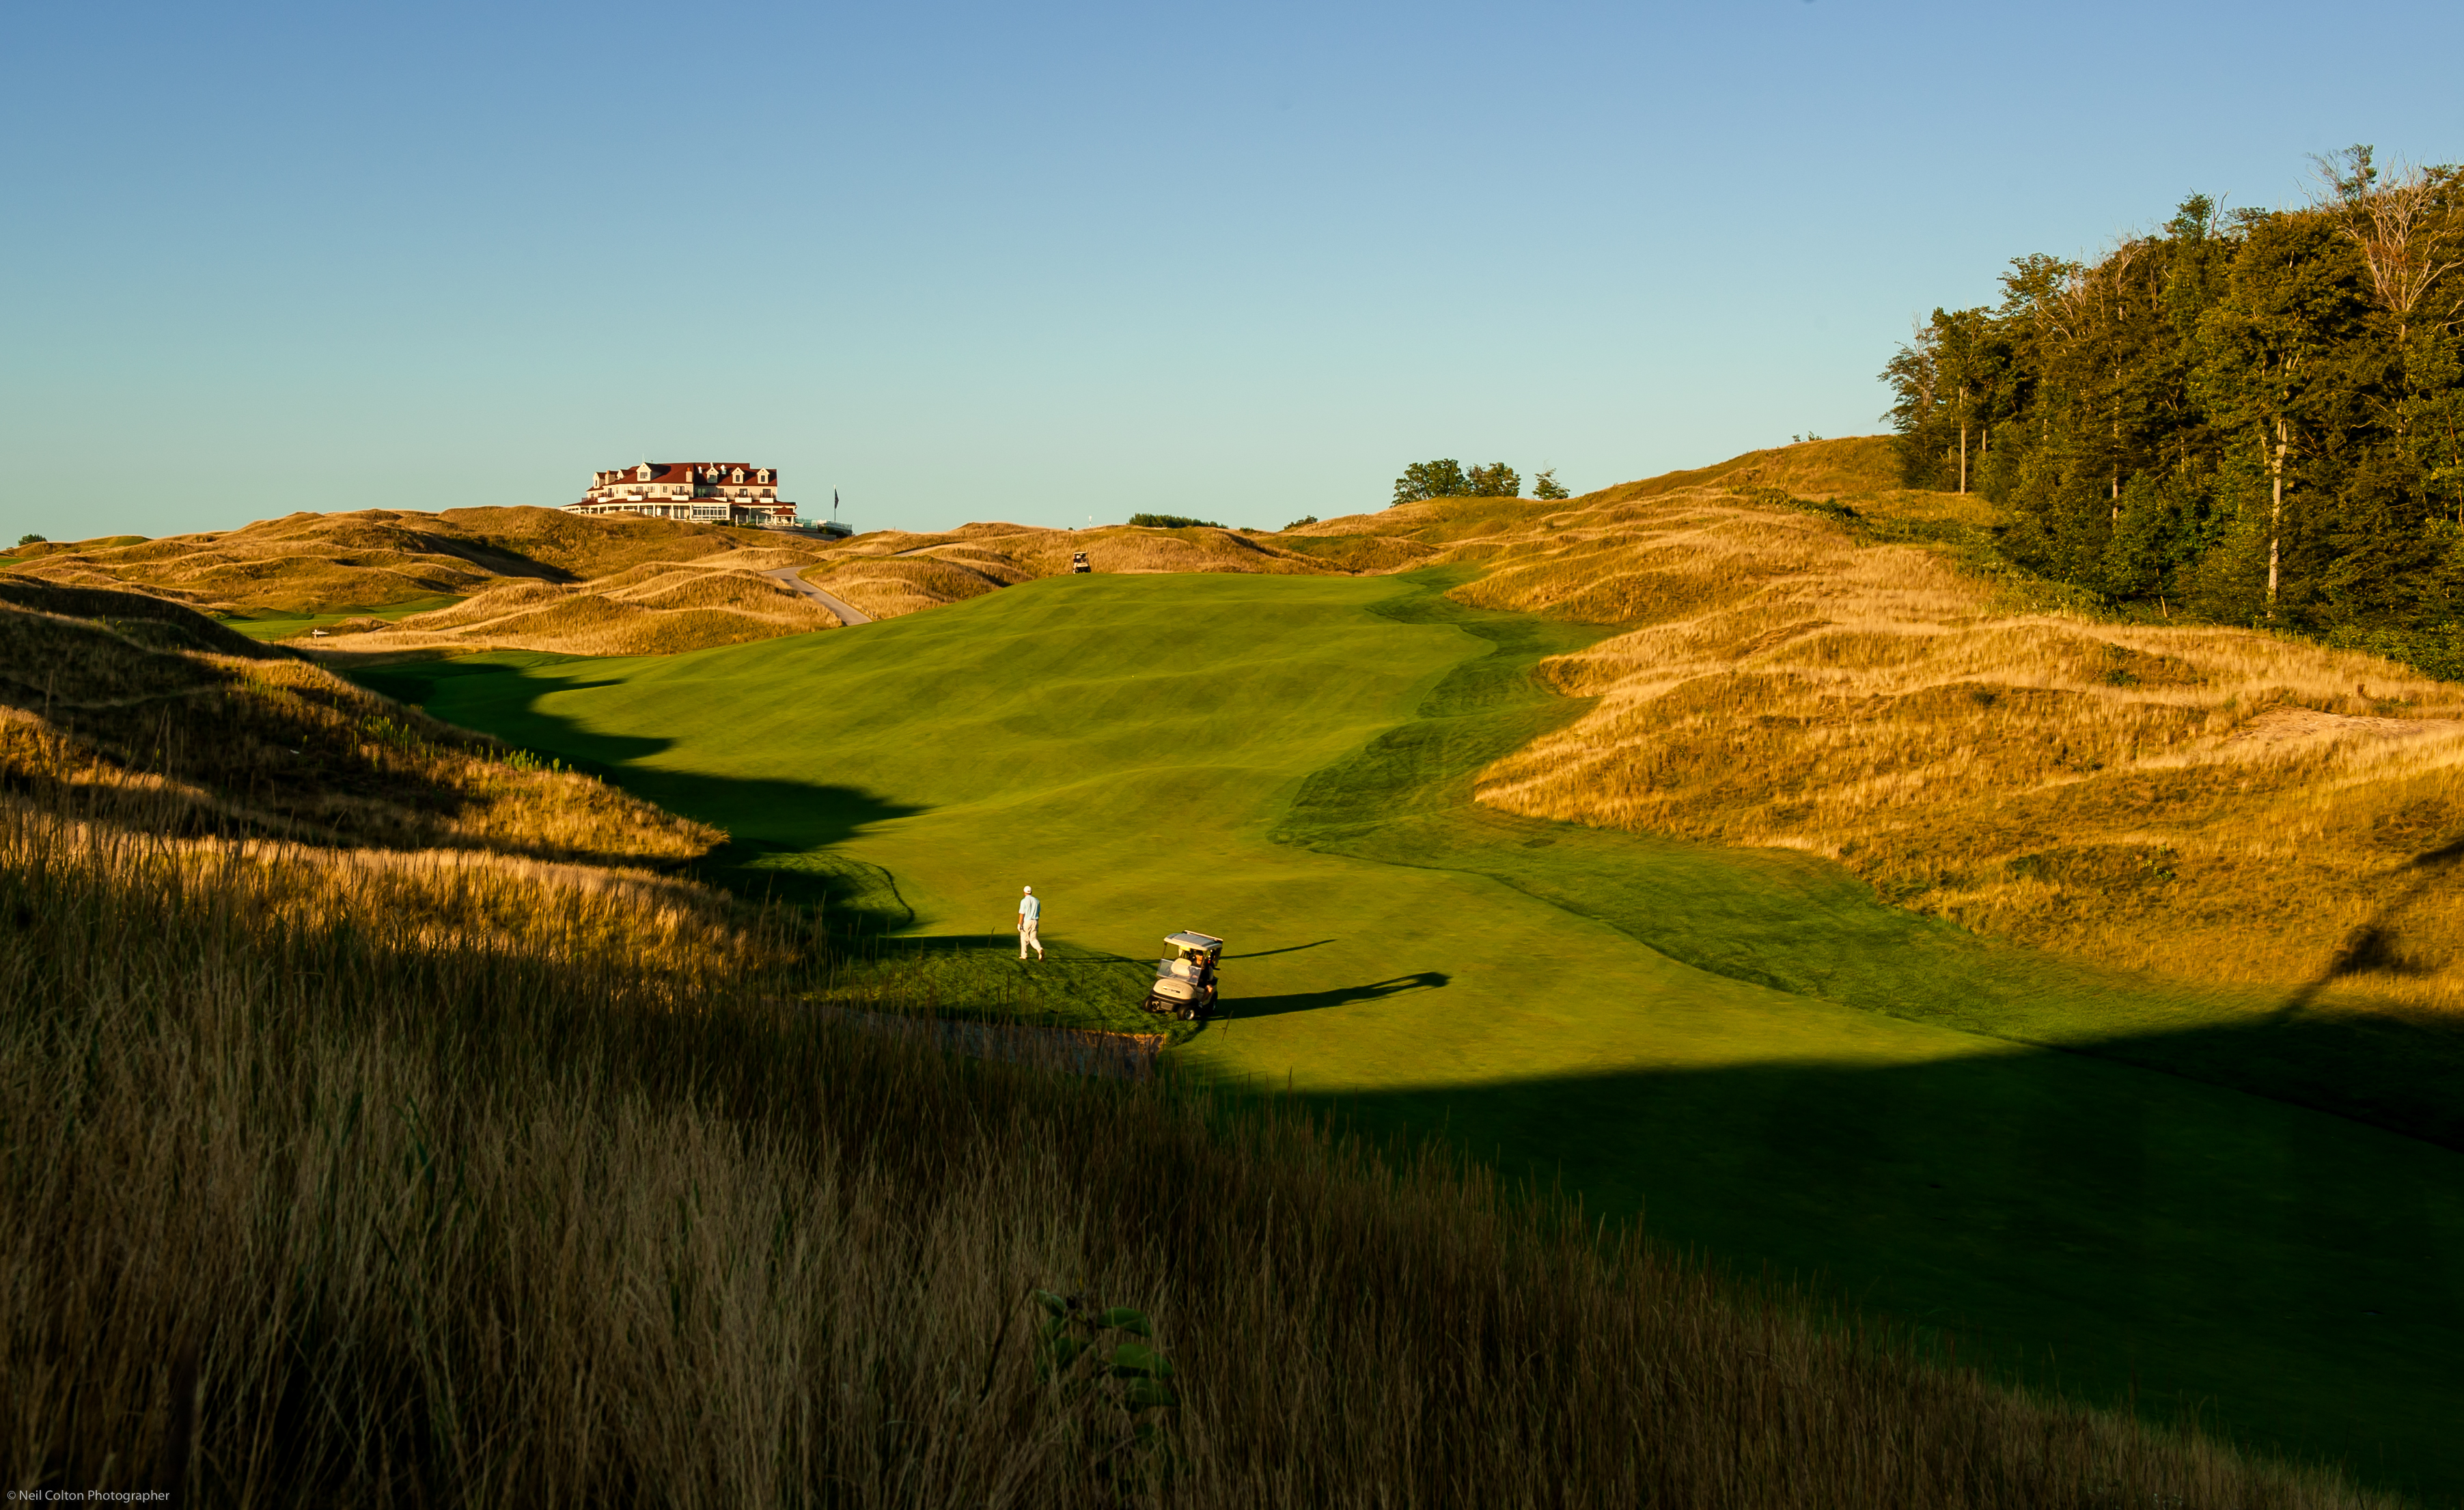 Neil-Colton-lifestyle-photographre-arcadia-bluffs-gc-17